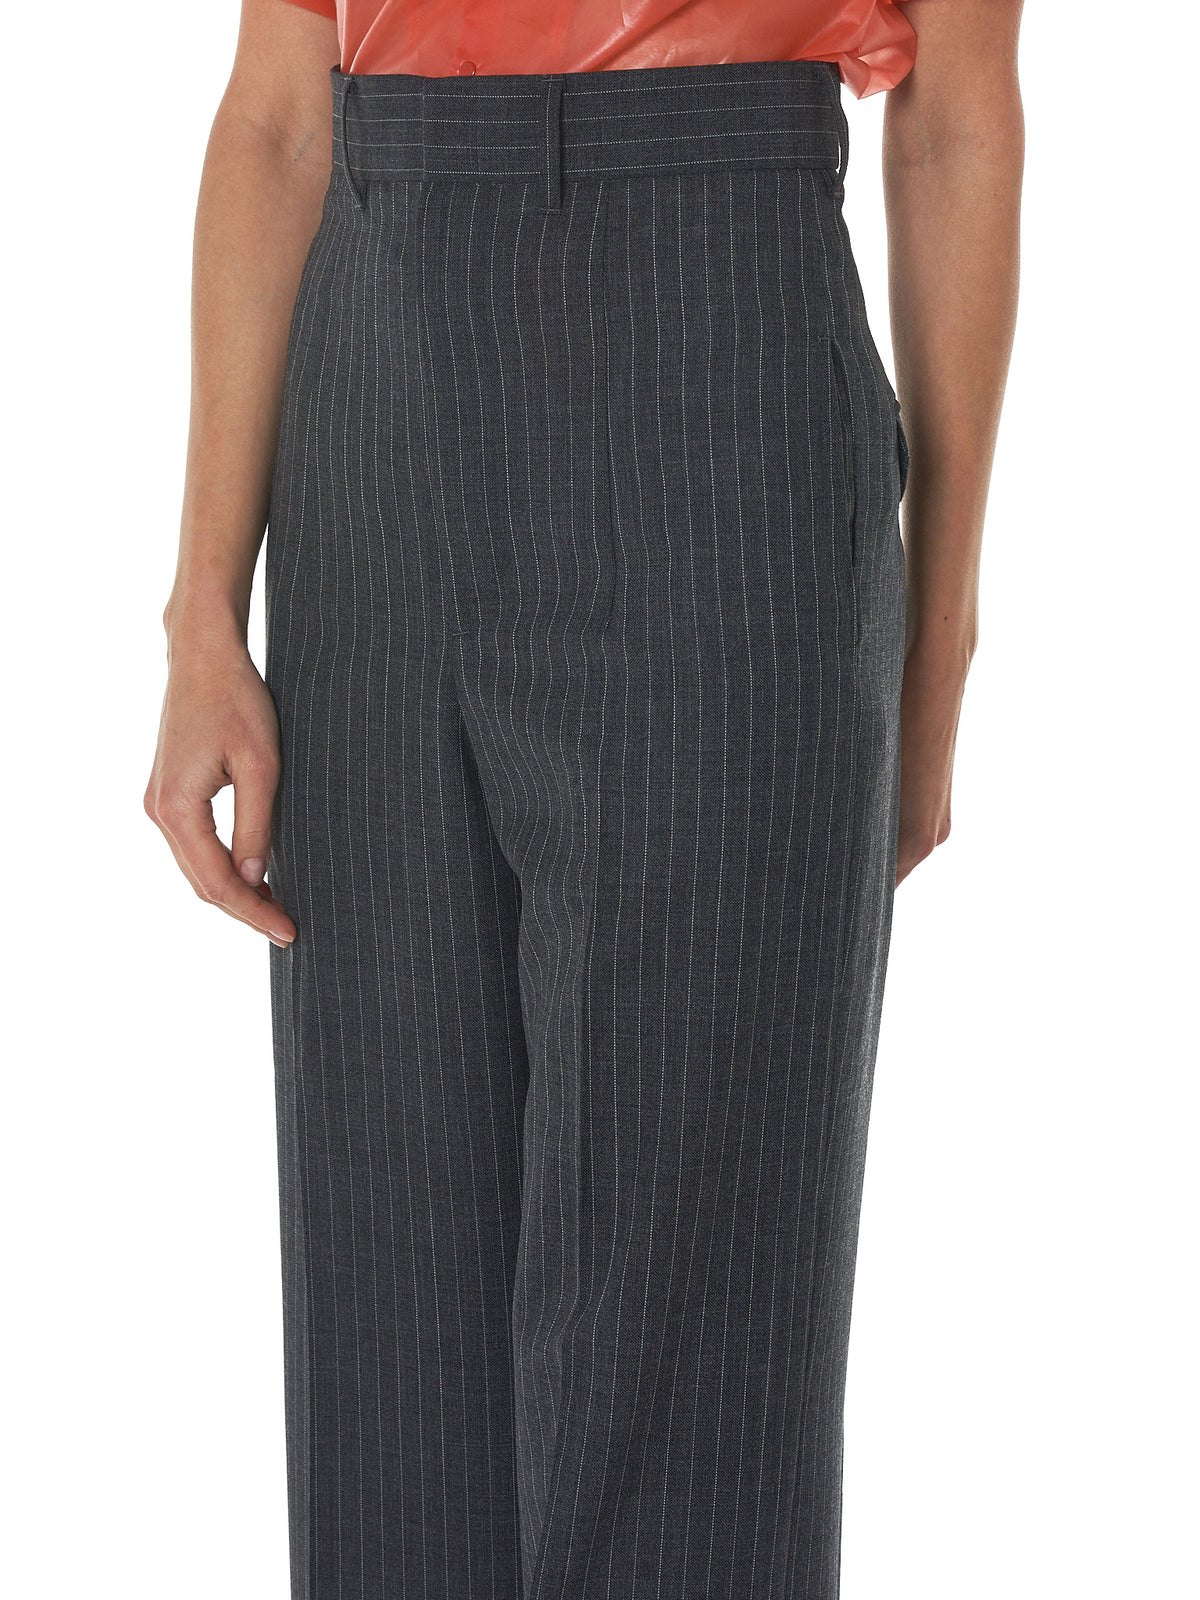 Toga Archives Pinstriped Pant - Hlorenzo Detail 2